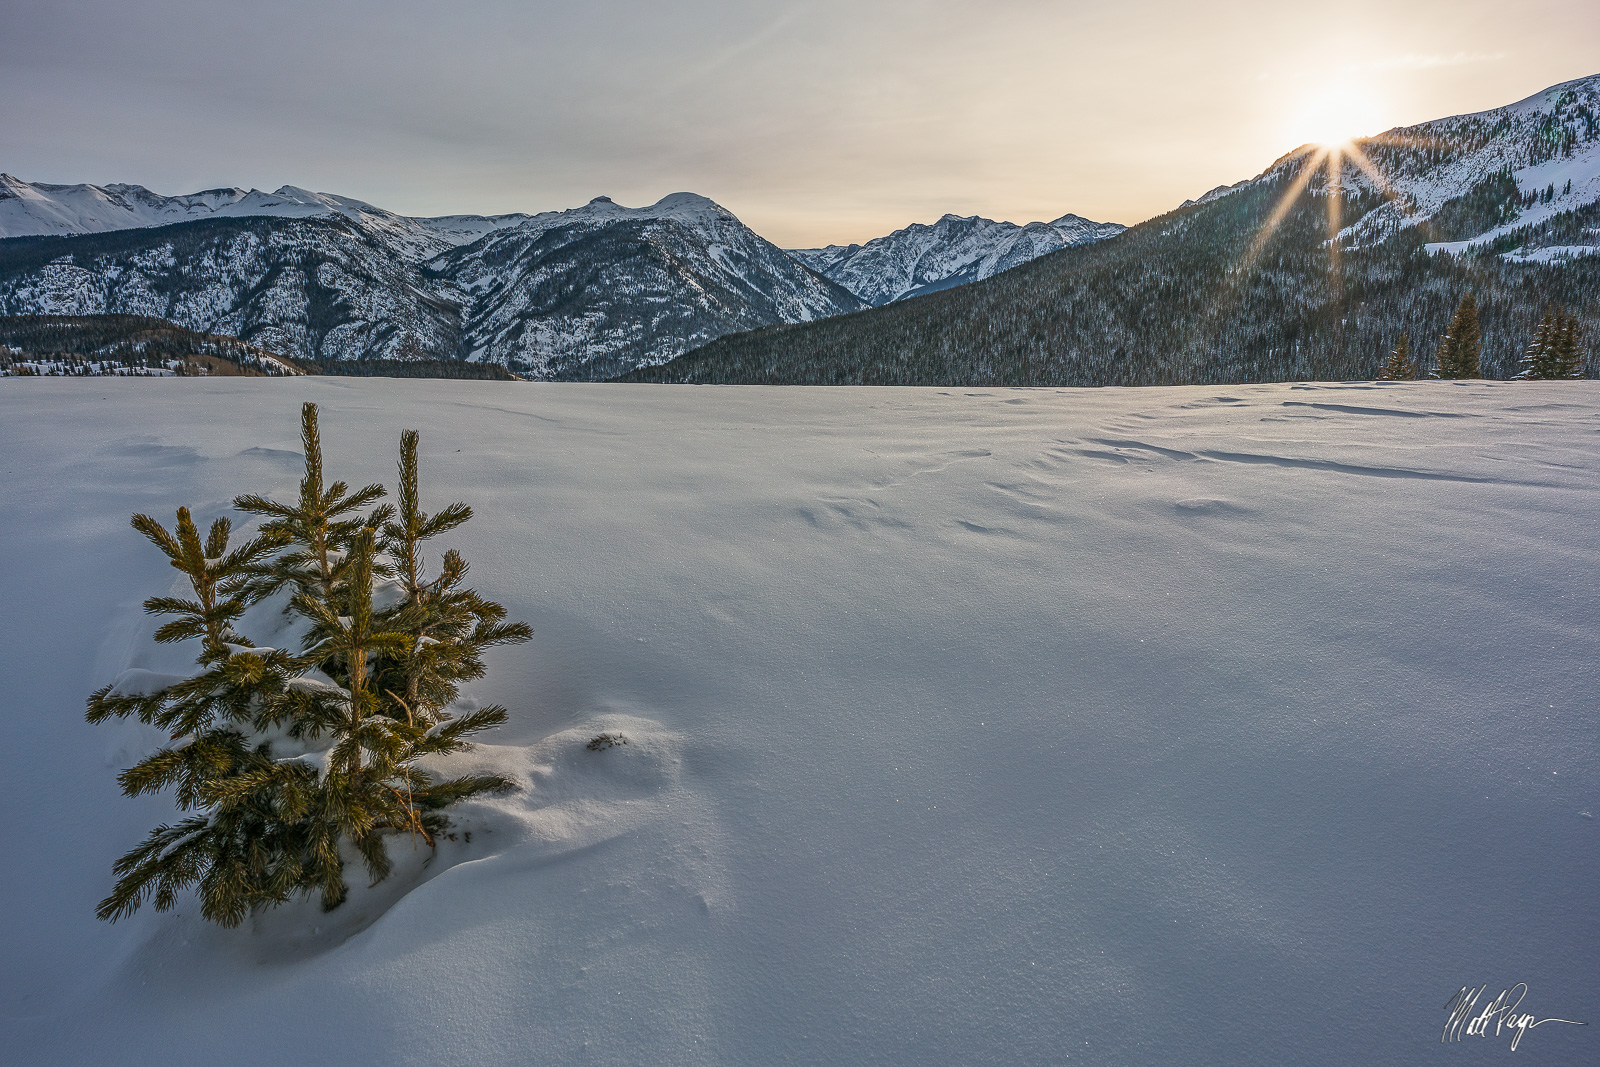 Cold, Colorado, Durango, Landscape, Molas Pass, Mountains, San Juan Mountains, Silverton, Snow, Subzero, Sunrise, Sunstar, Winter, morning, Landscape Photography, photo